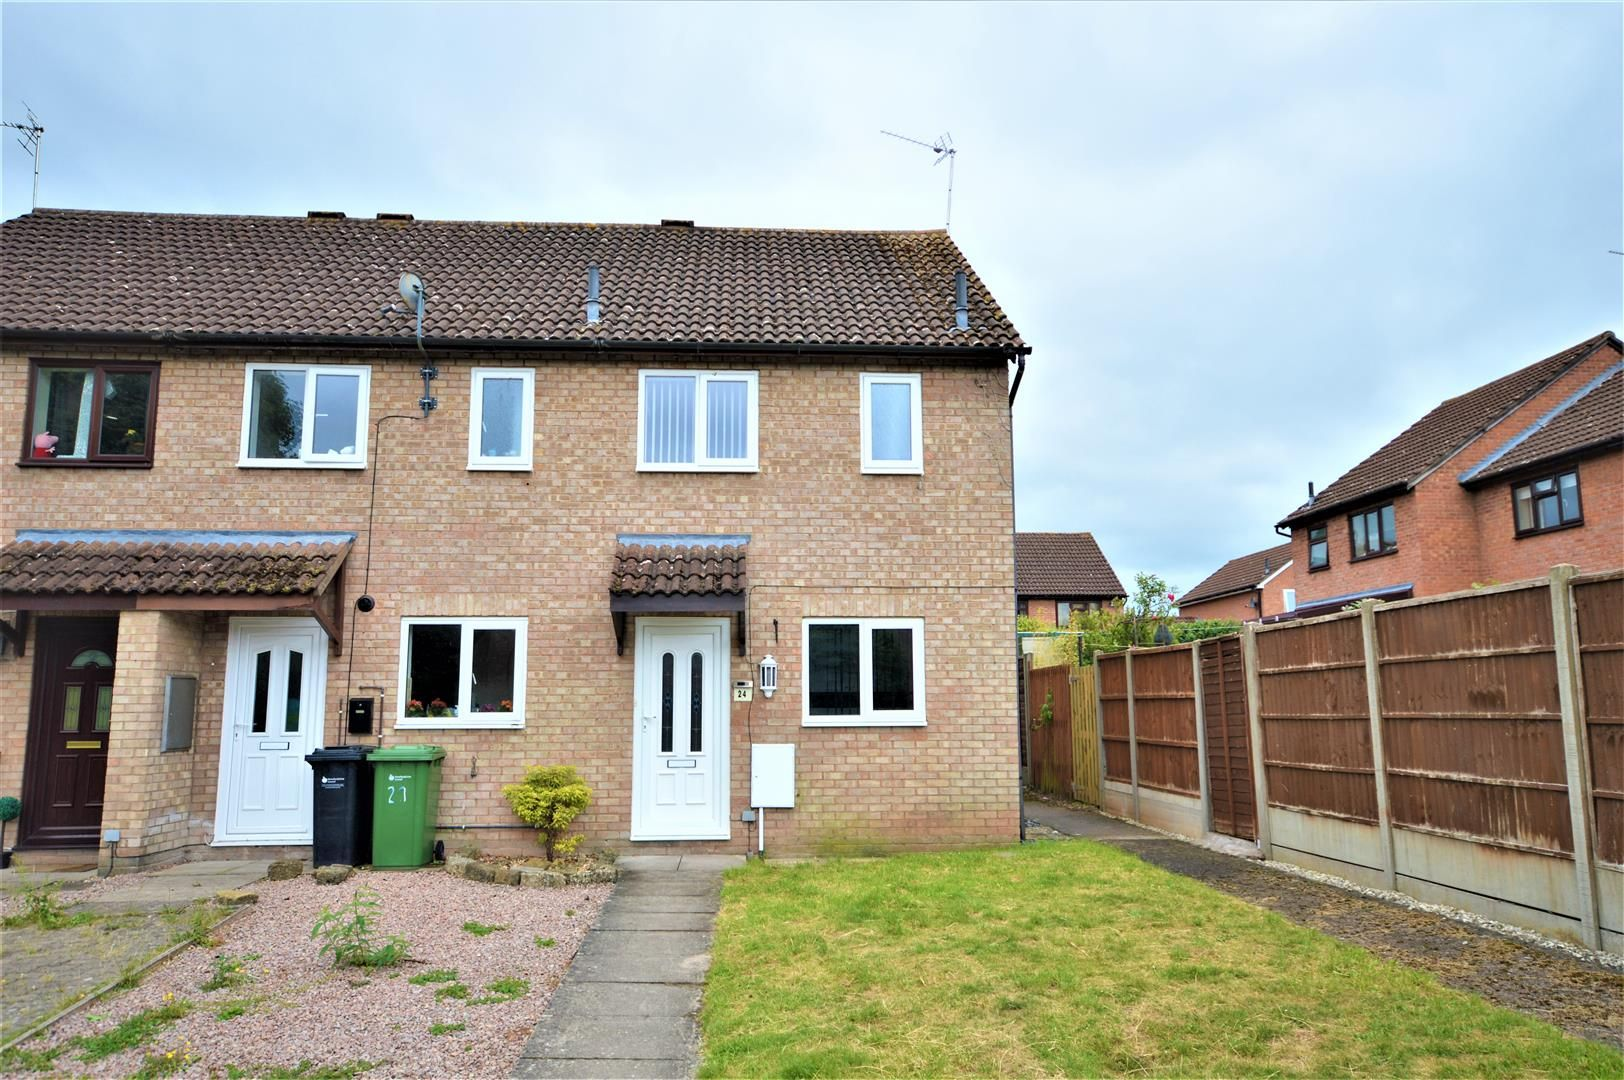 2 bed end-of-terrace for sale in Belmont 1